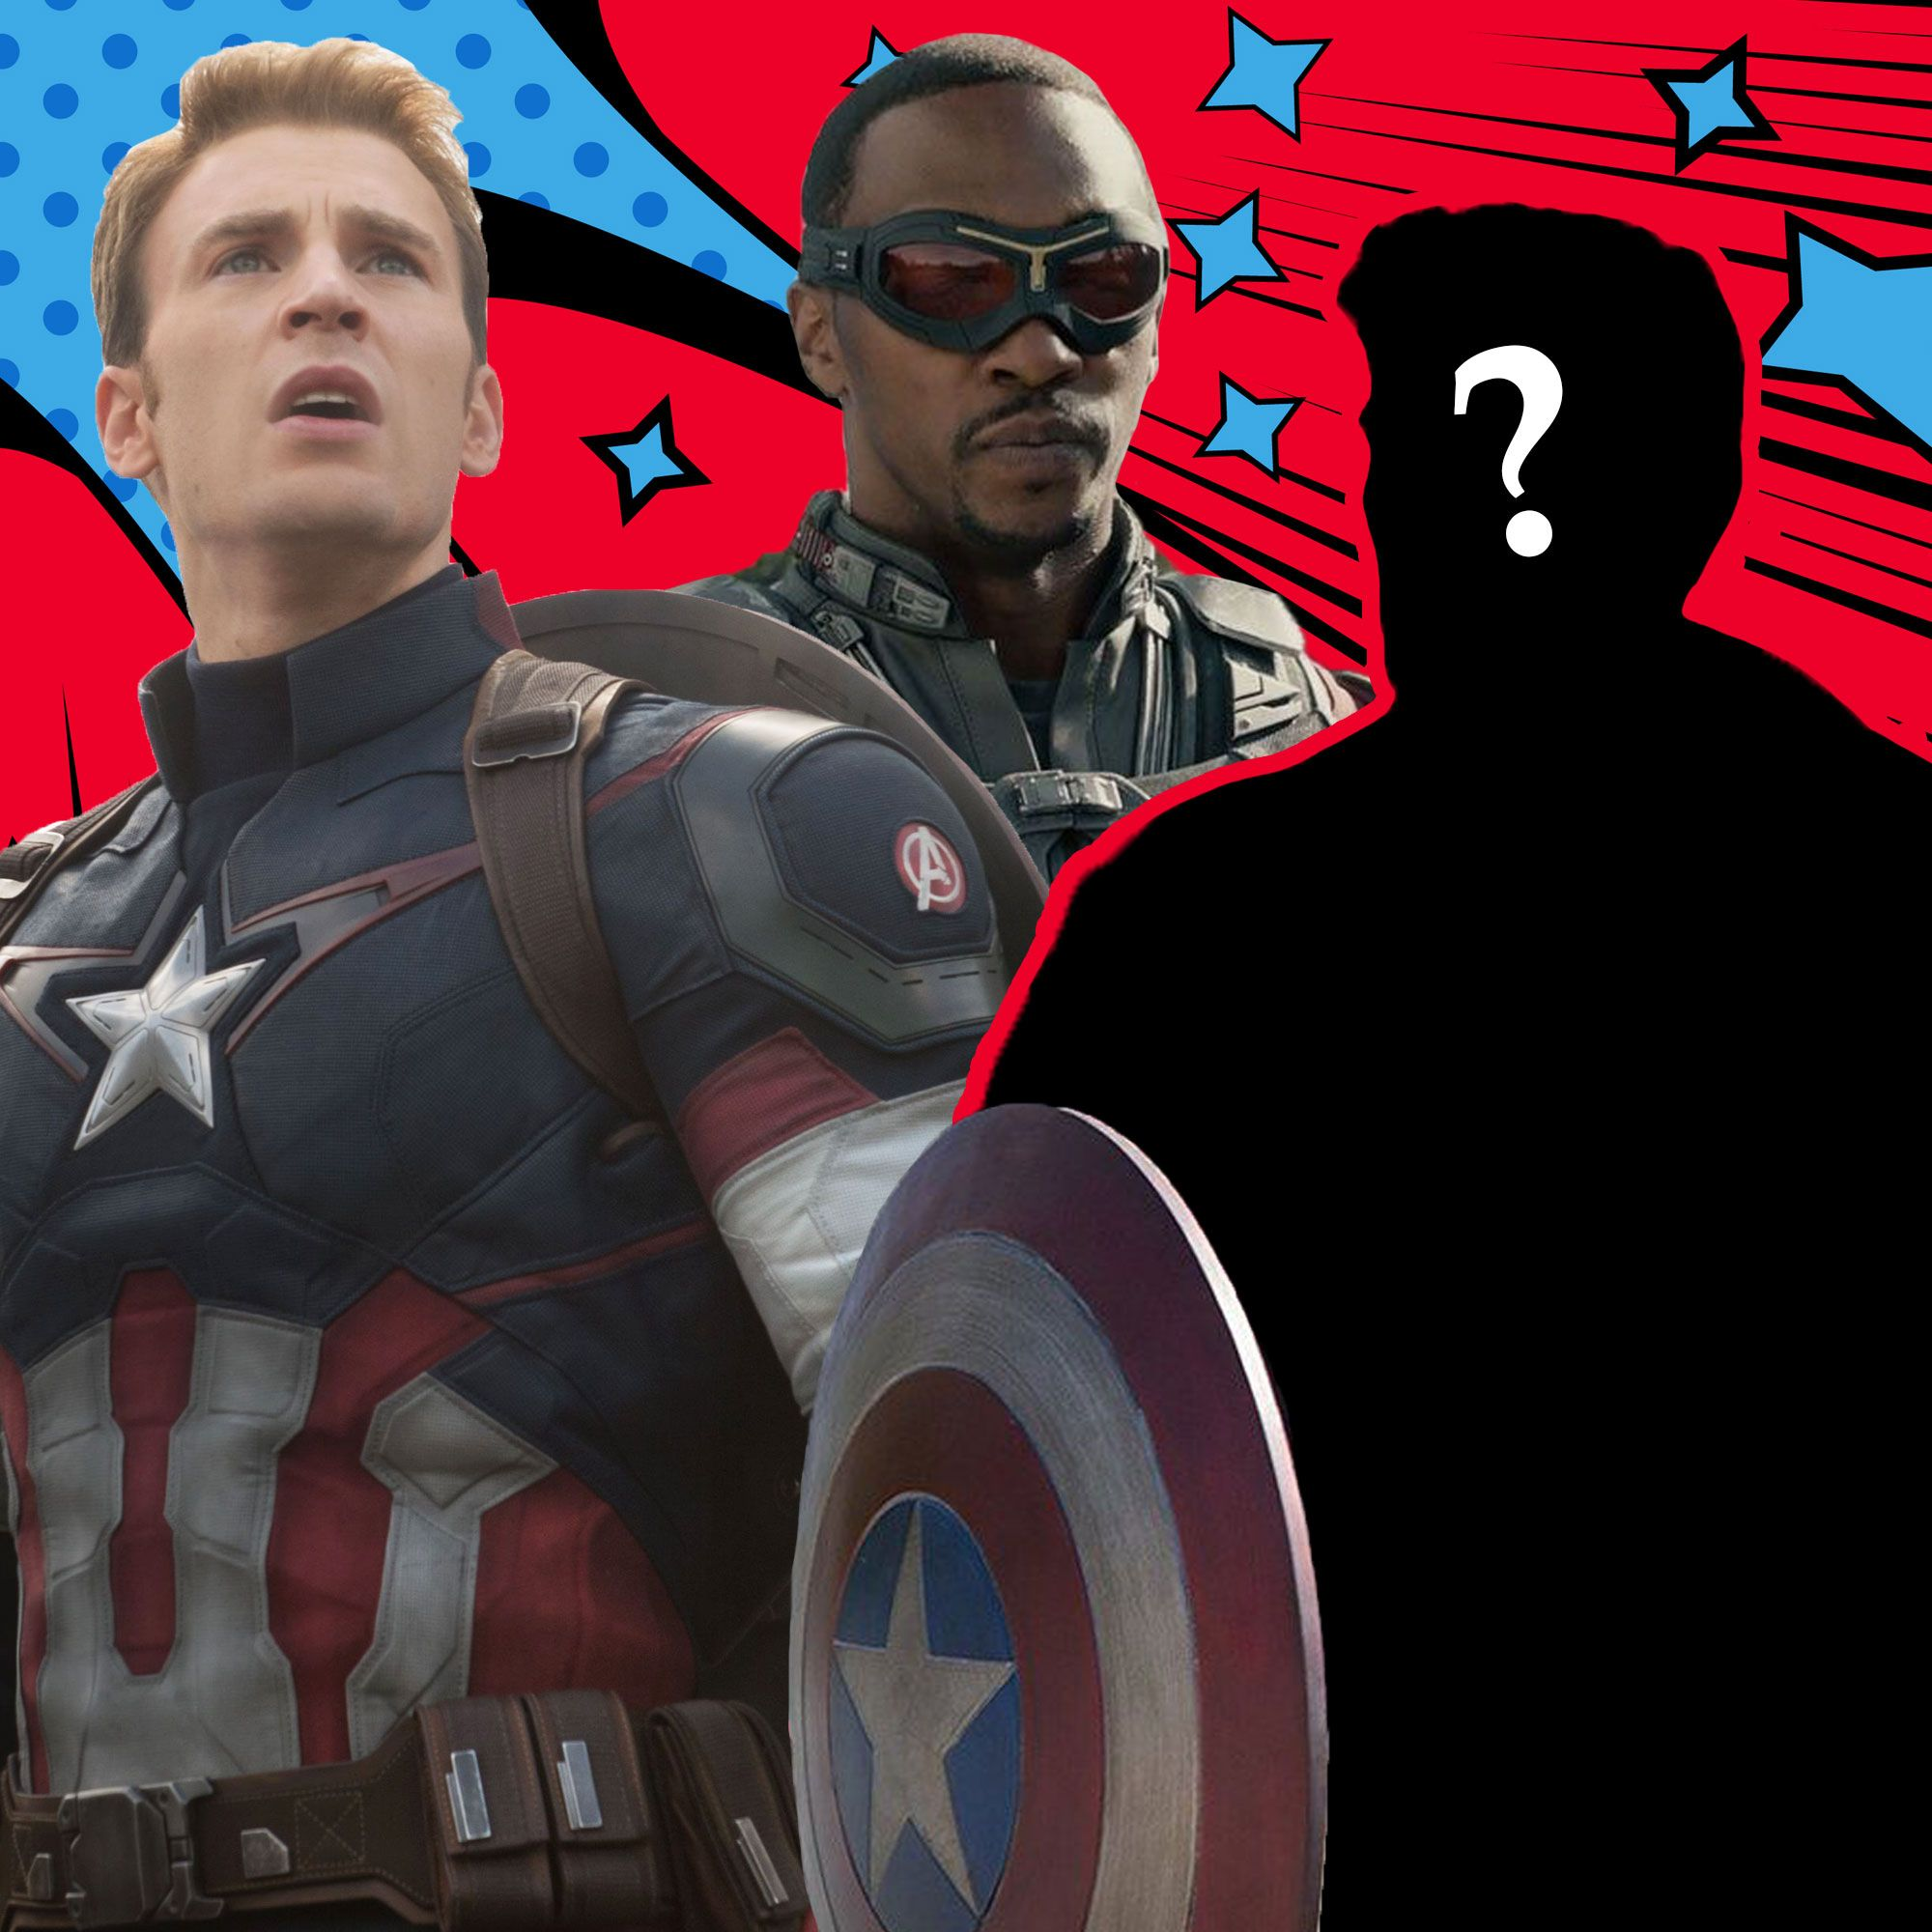 Next Captain America - The Falcon and the Winter Soldier could be trumped by a brand new Cap